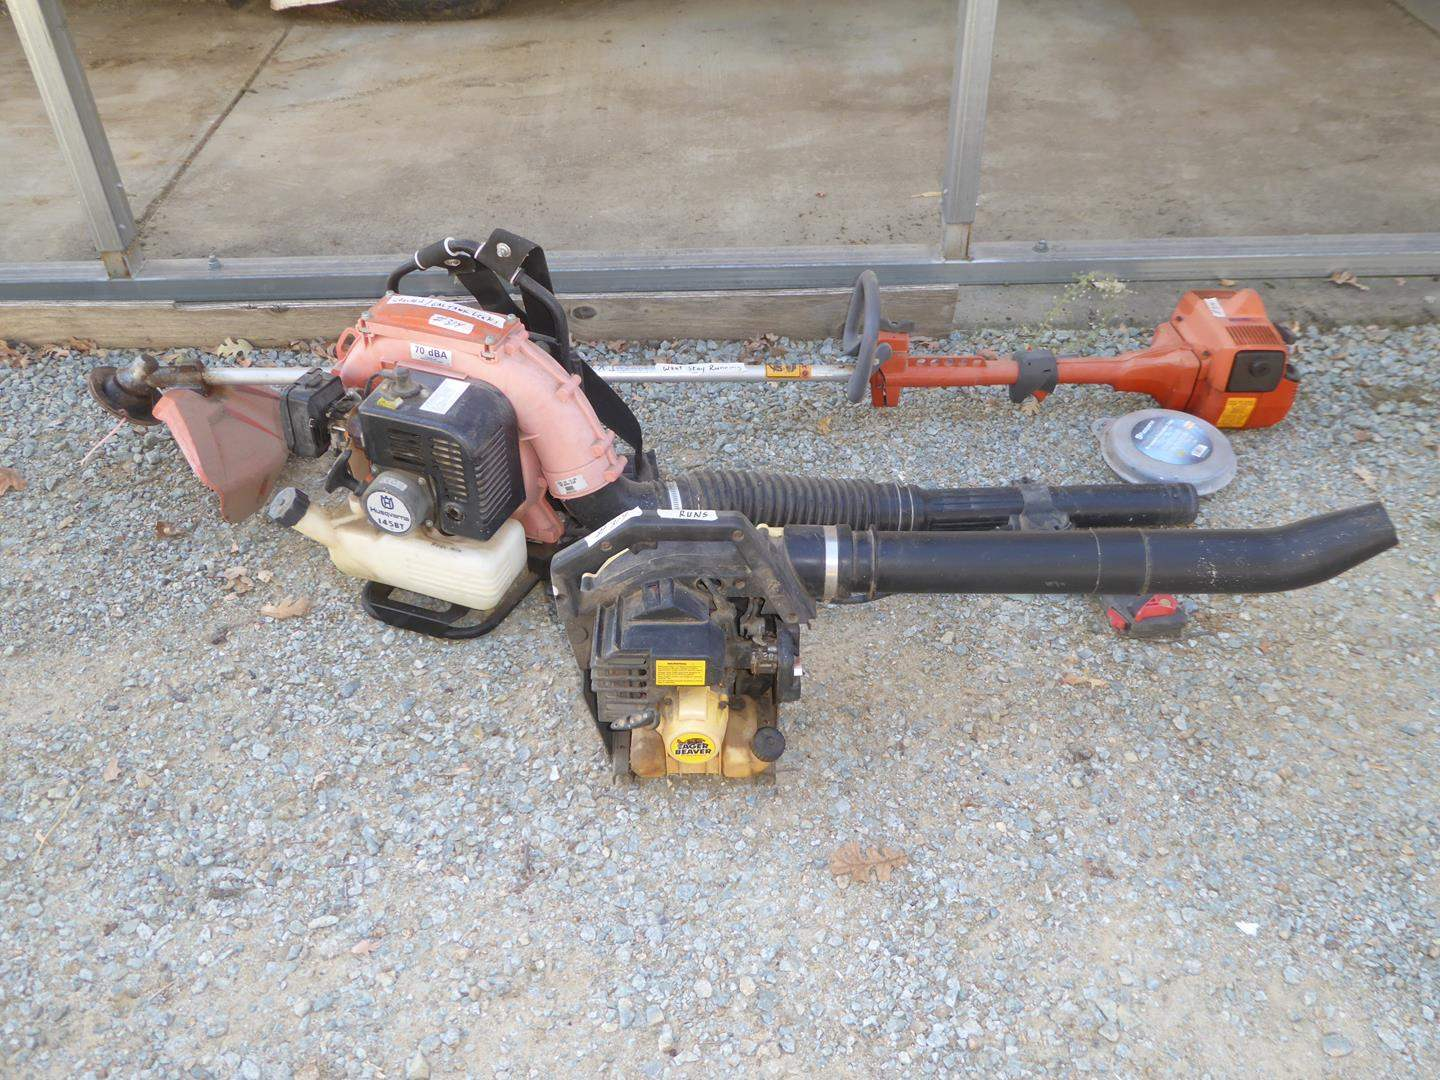 Lot # 314 - Gas Power Blower, Backpack Blower & Weed Trimmer w/Hedge Trimmer Attachment  (main image)